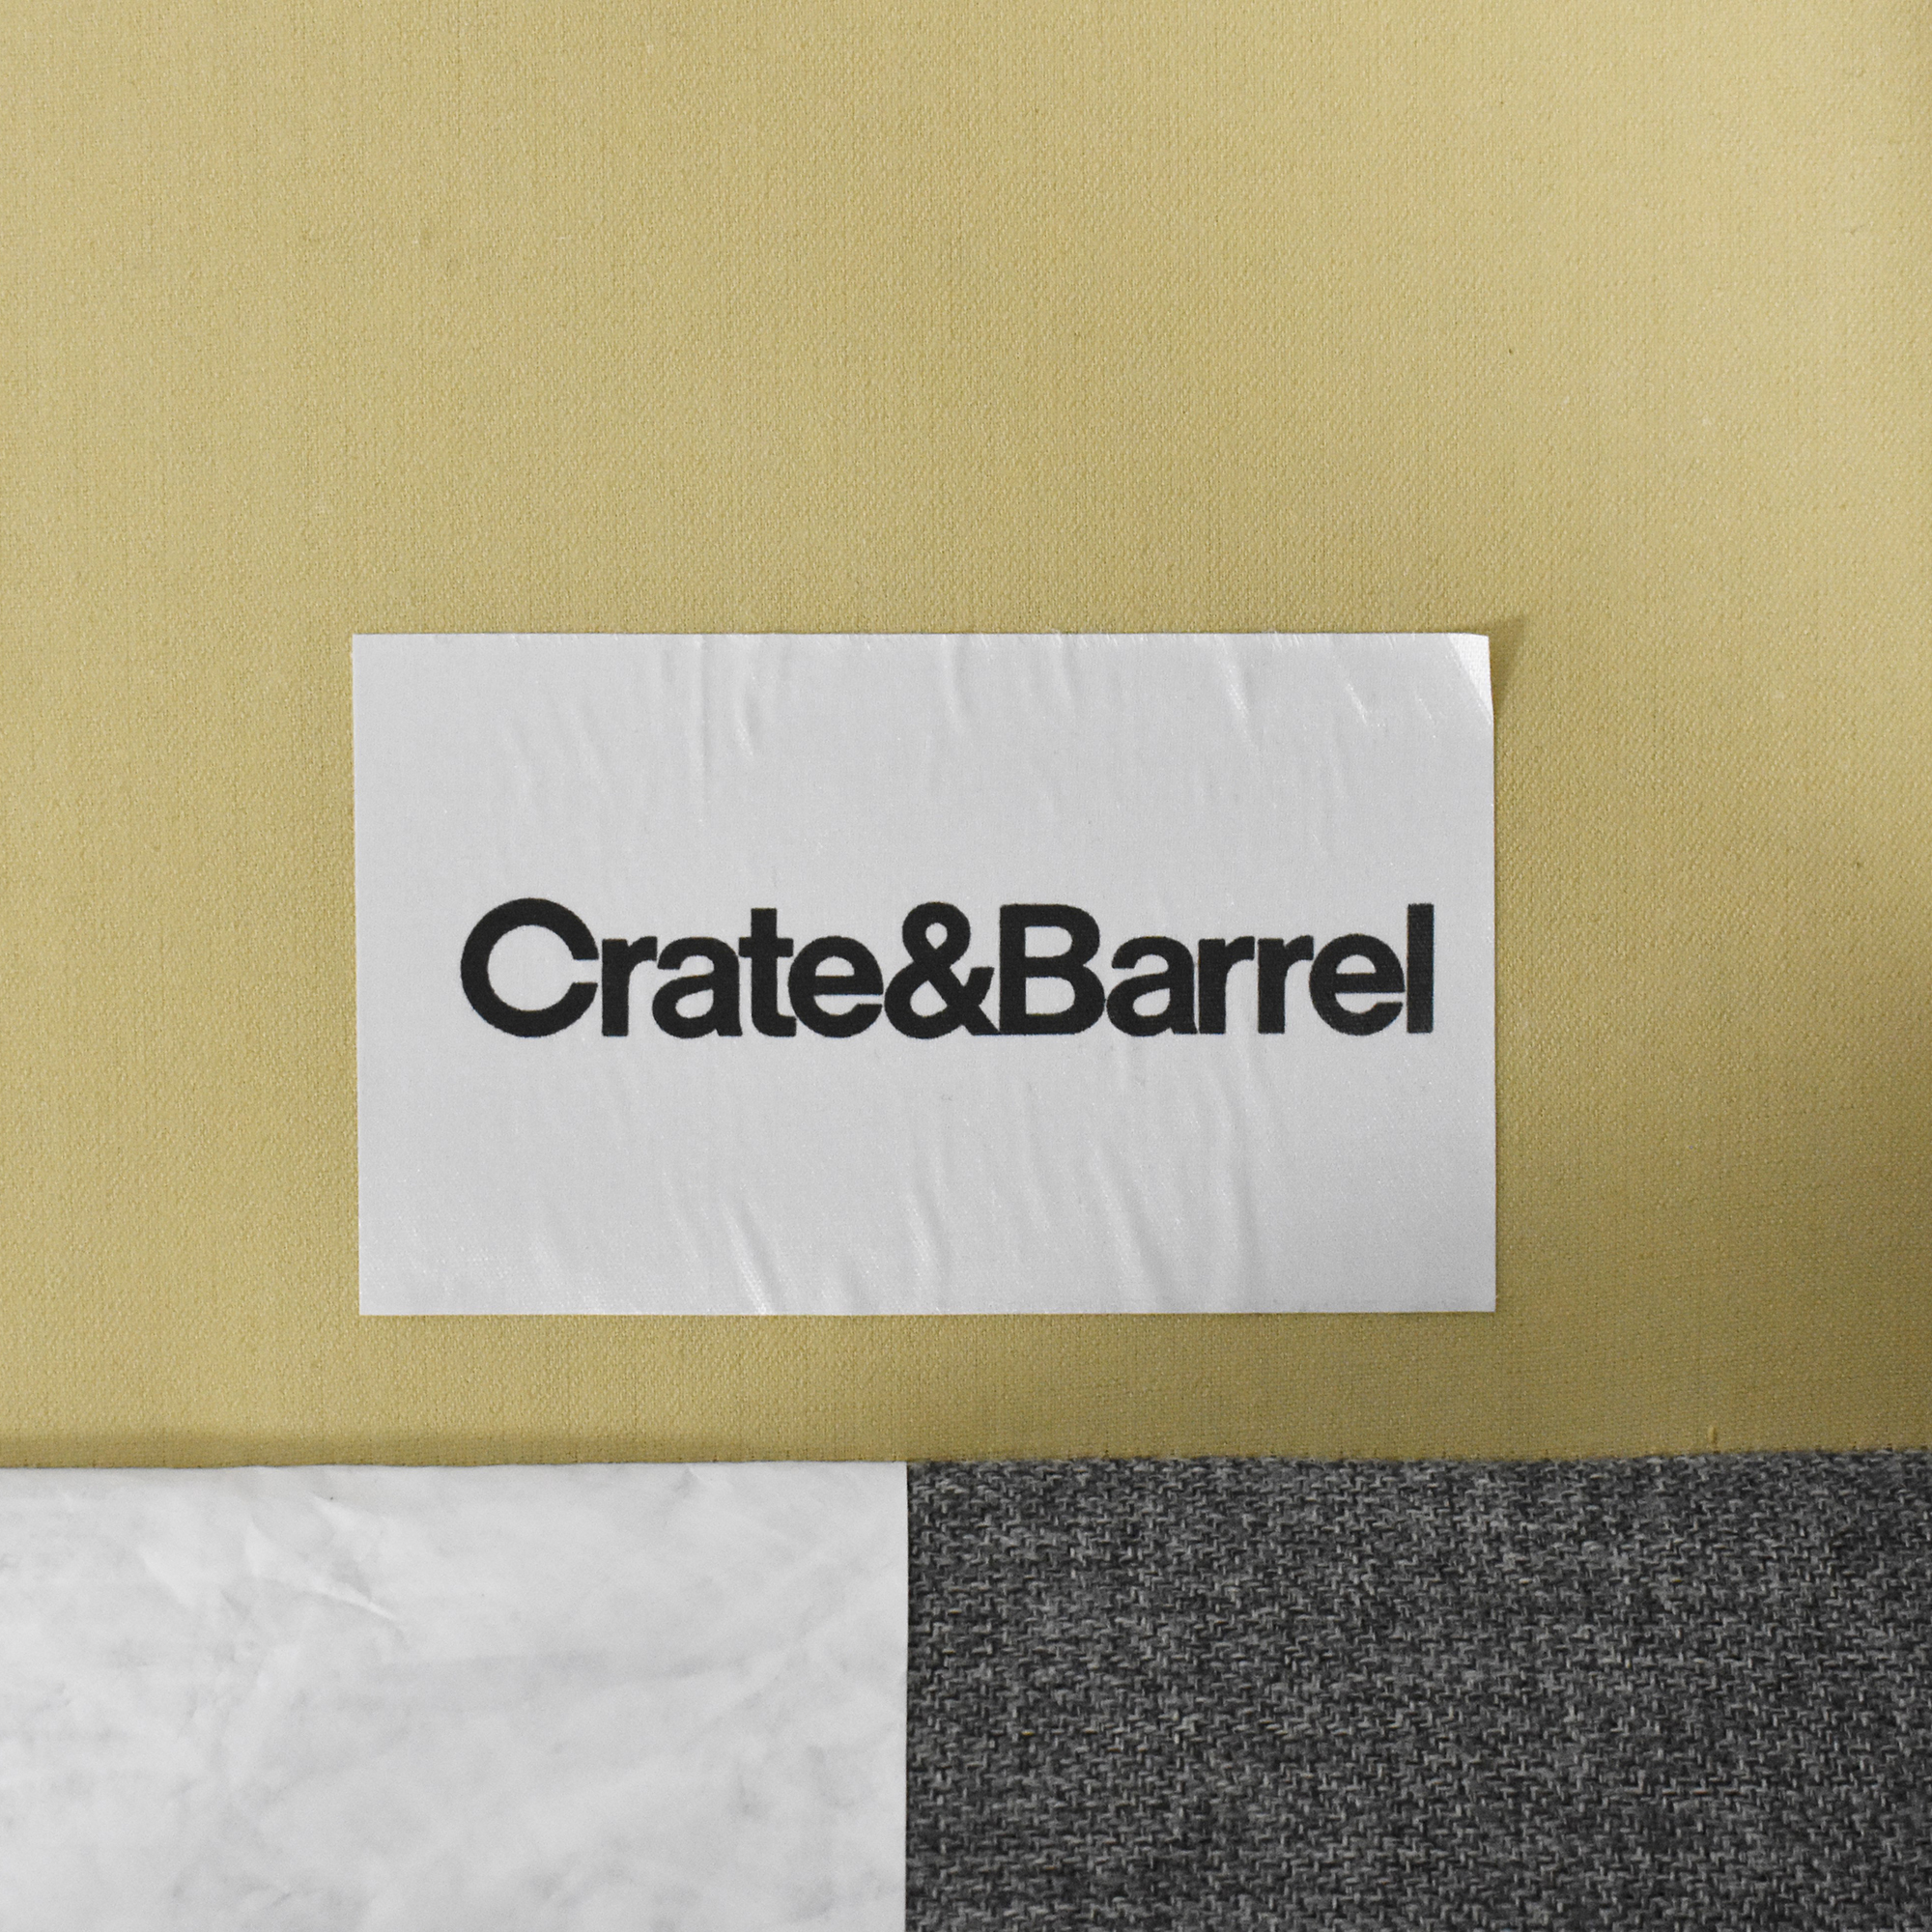 buy Crate & Barrel Petrie Two Piece Chaise Midcentury Sectional Sofa Crate & Barrel Sofas